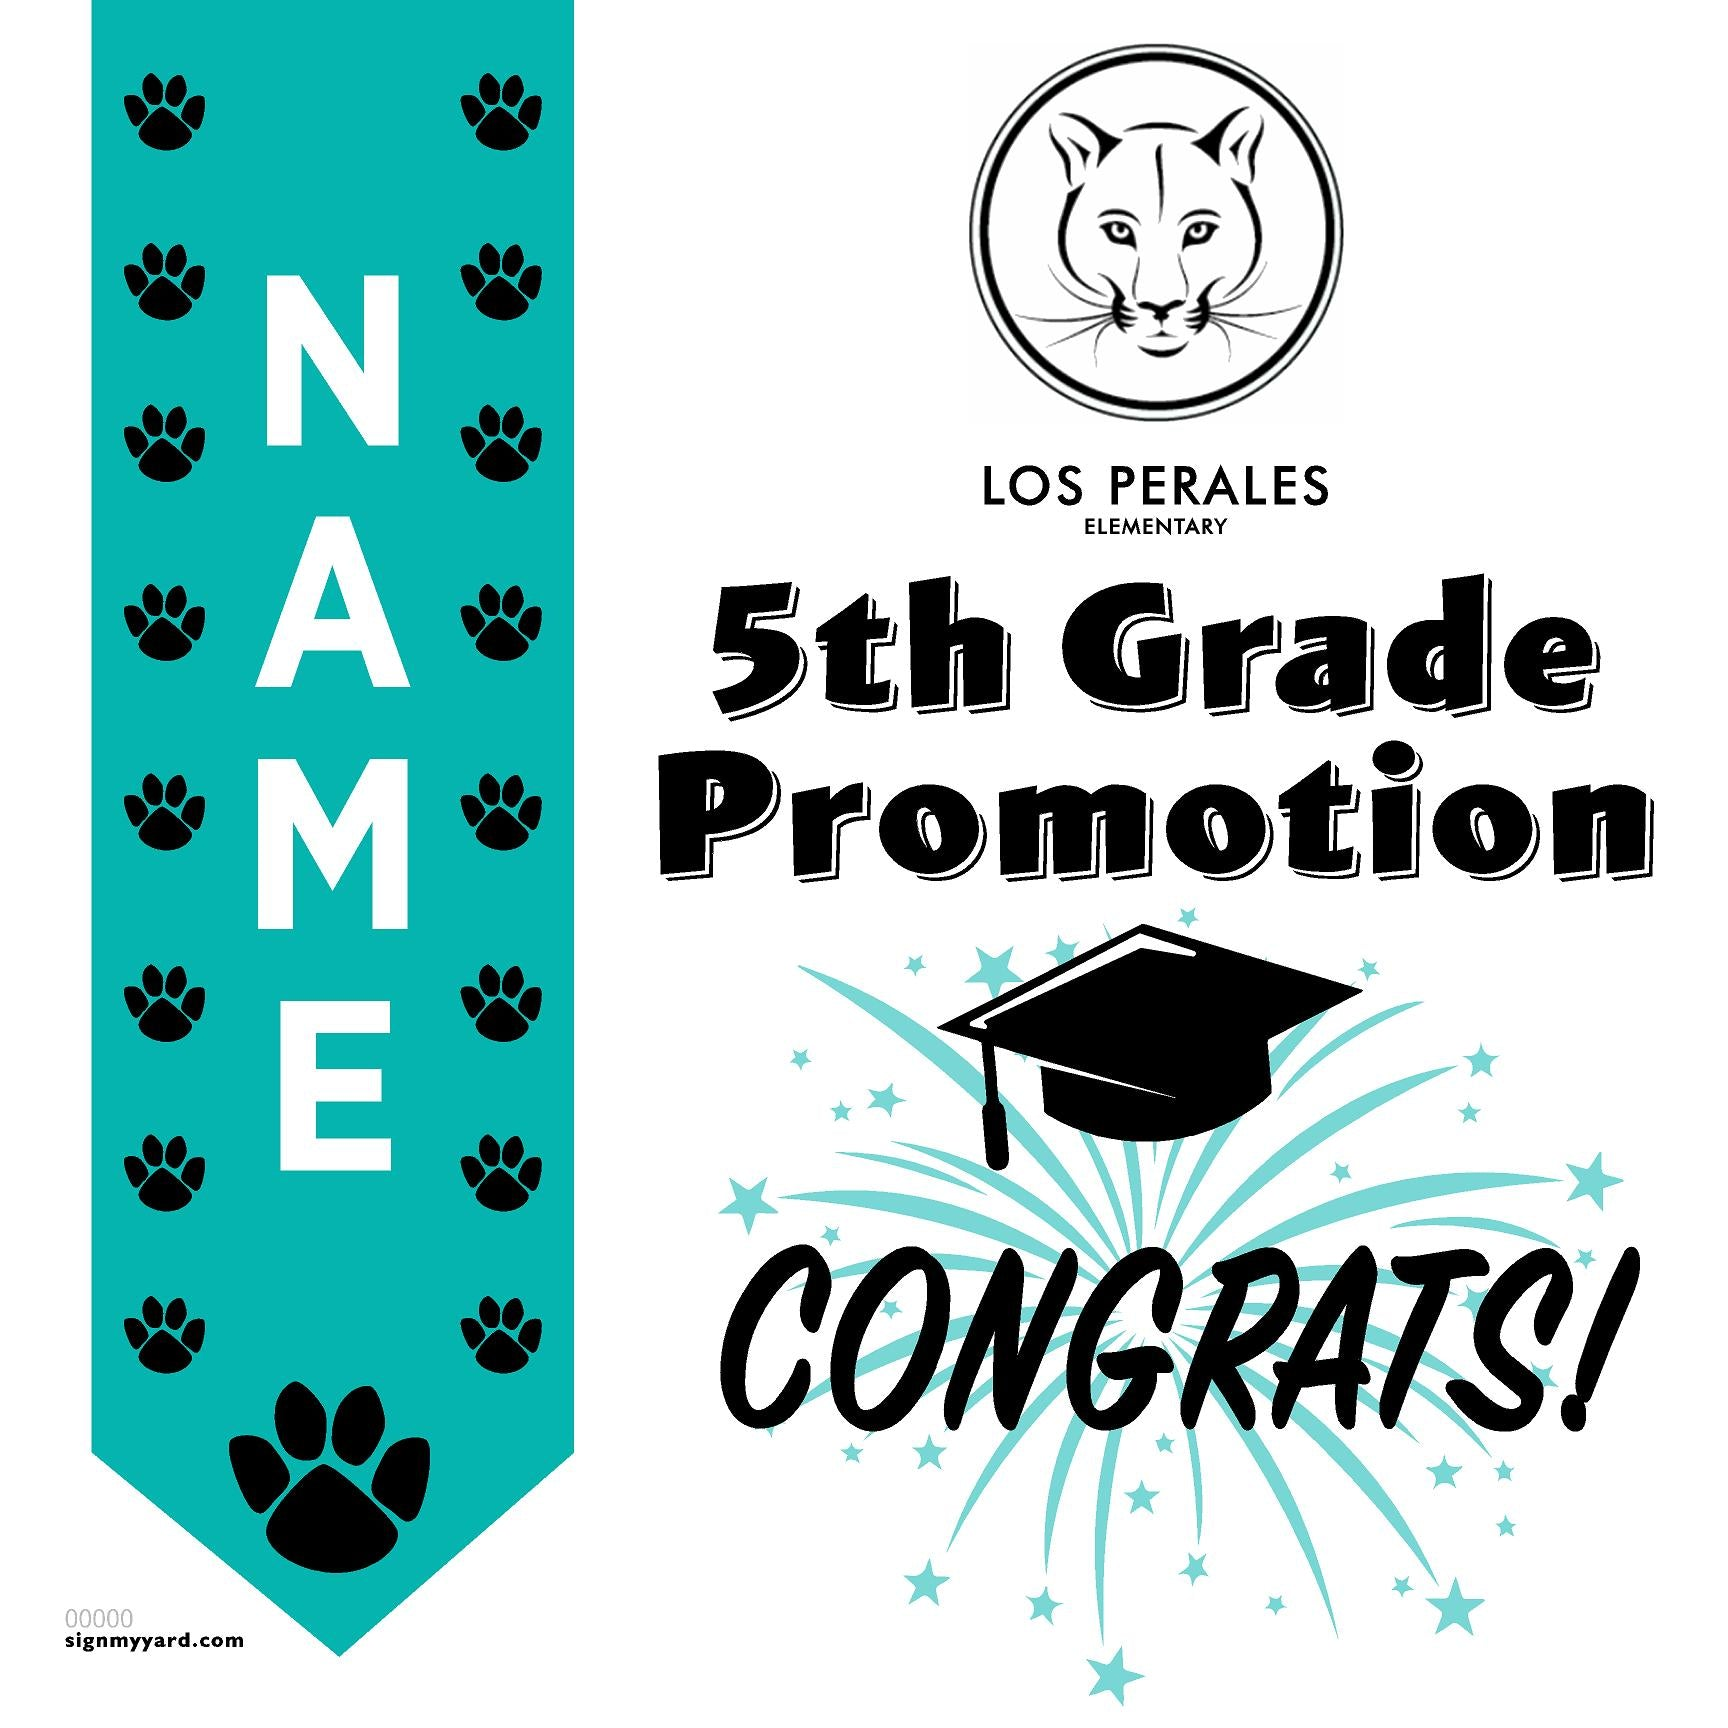 Los Perales Elementary School 5th Grade Promotion 24x24 Yard Sign (Option B)